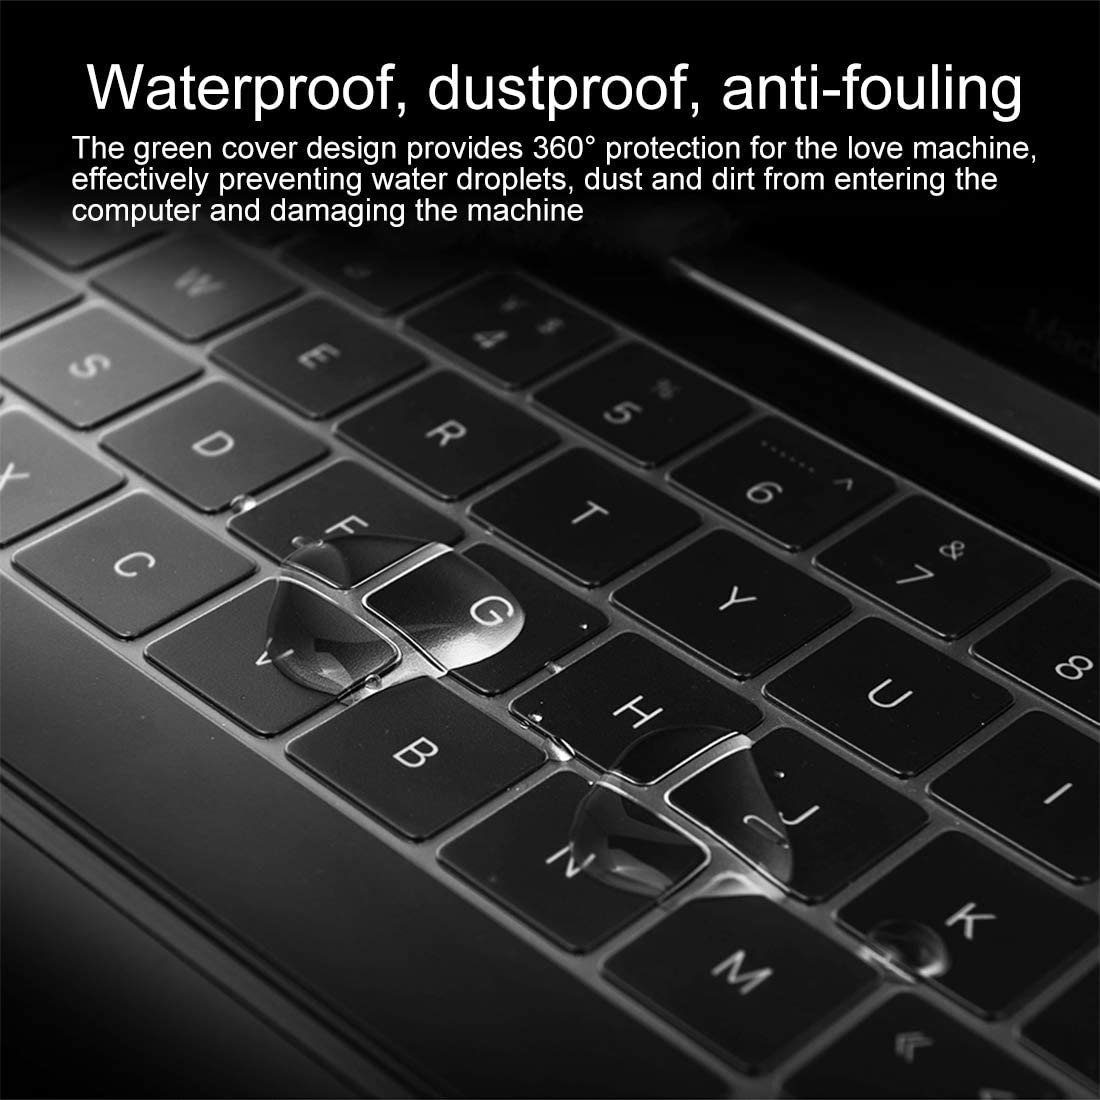 Black Color : White A1534 // A1708 Durable Keyboard Protector Silica Gel Film for MacBook Retina 12 // Pro 13